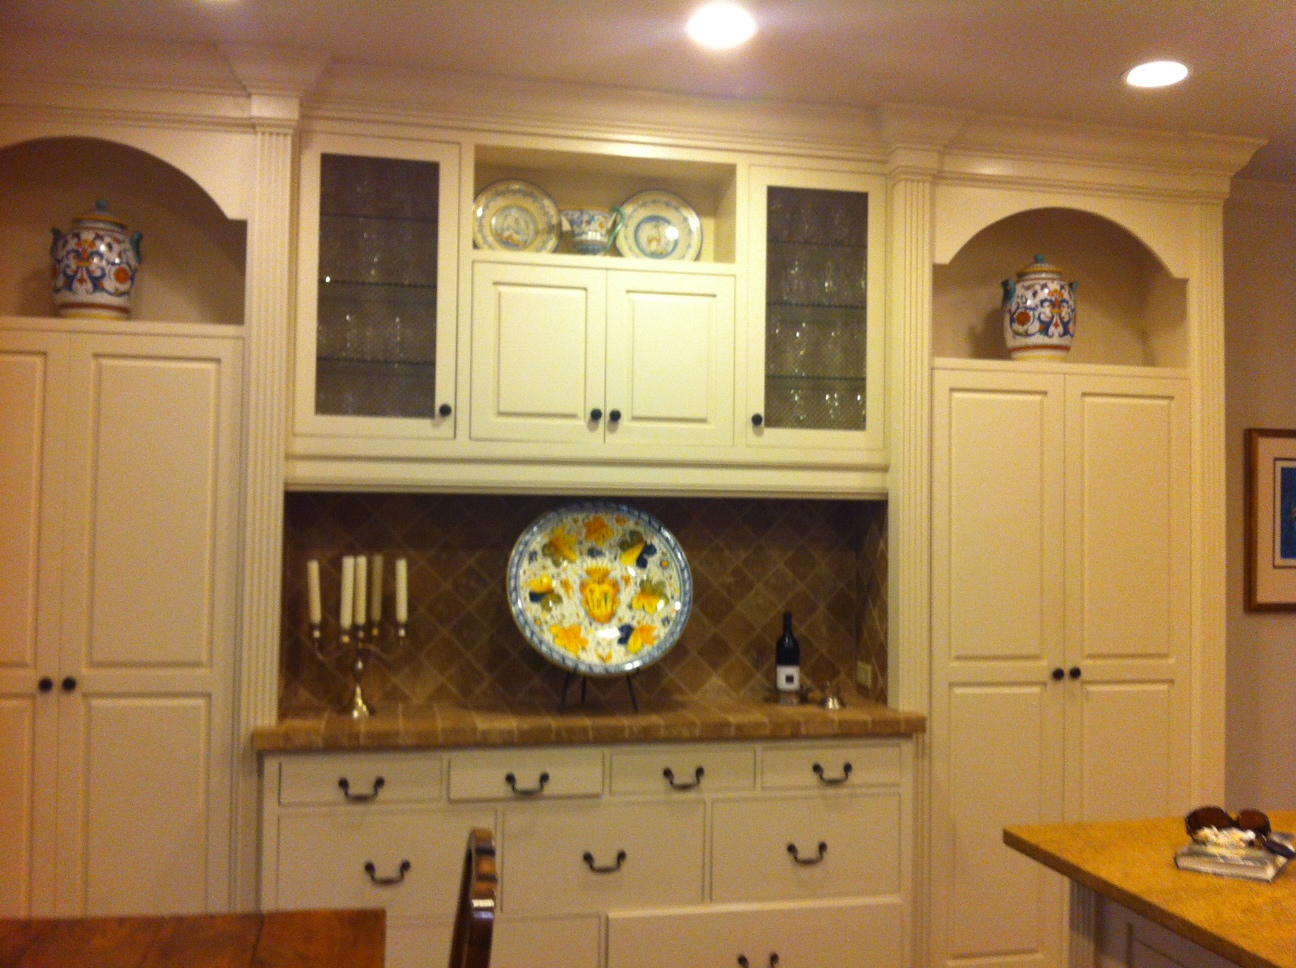 Vintage Deruta ceramics in our client's kitchen